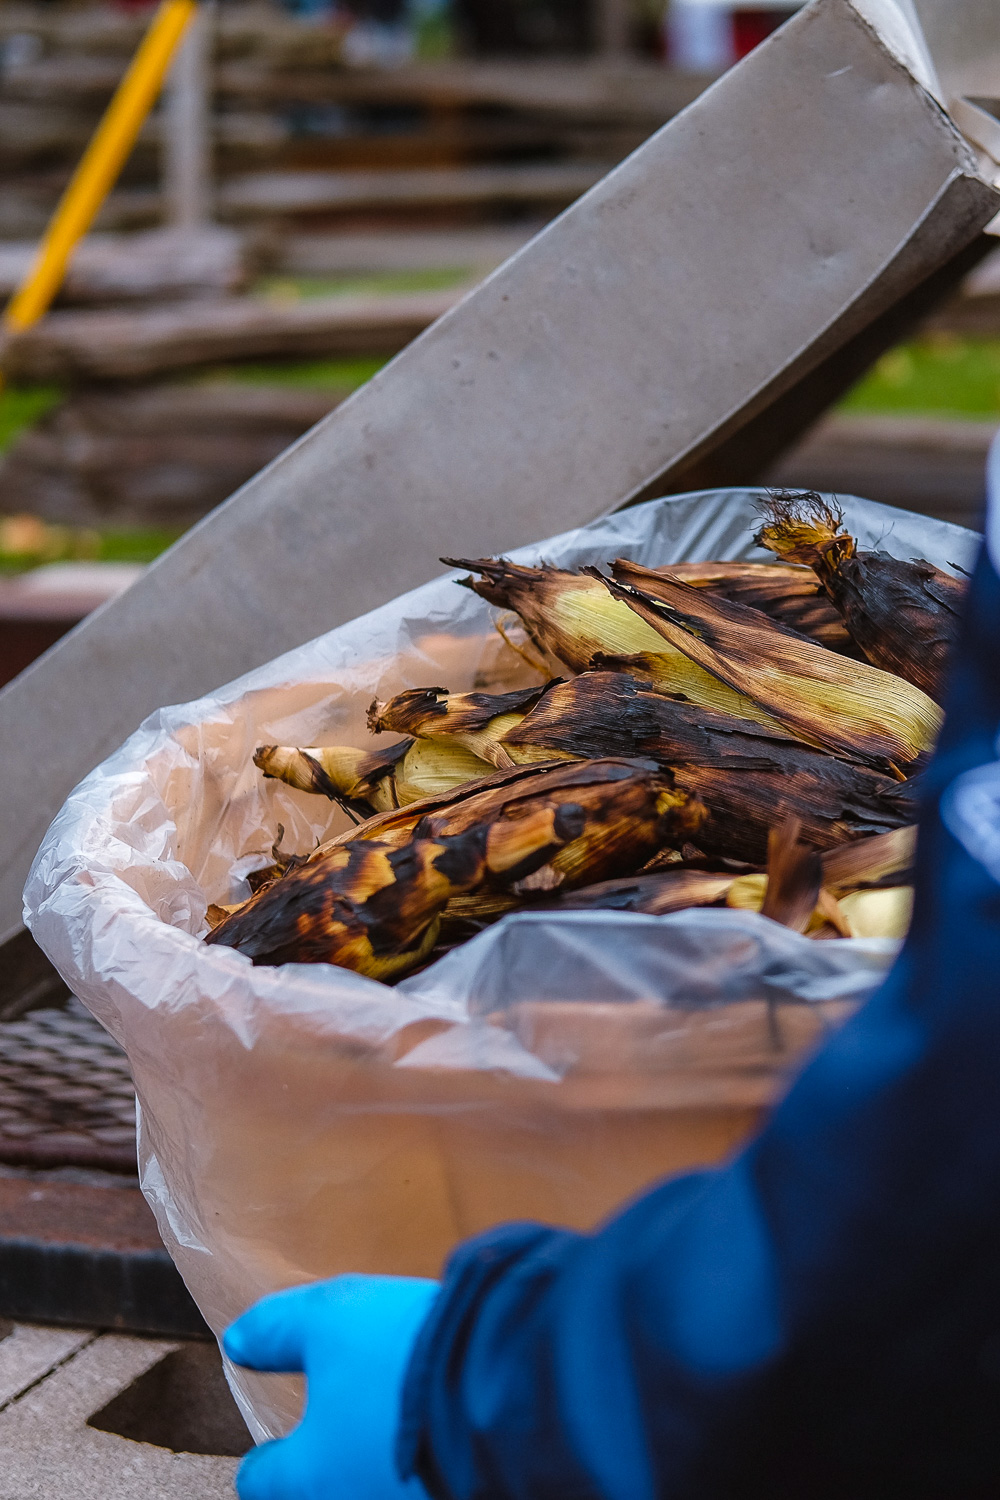 A basket of charred corn ready for eating